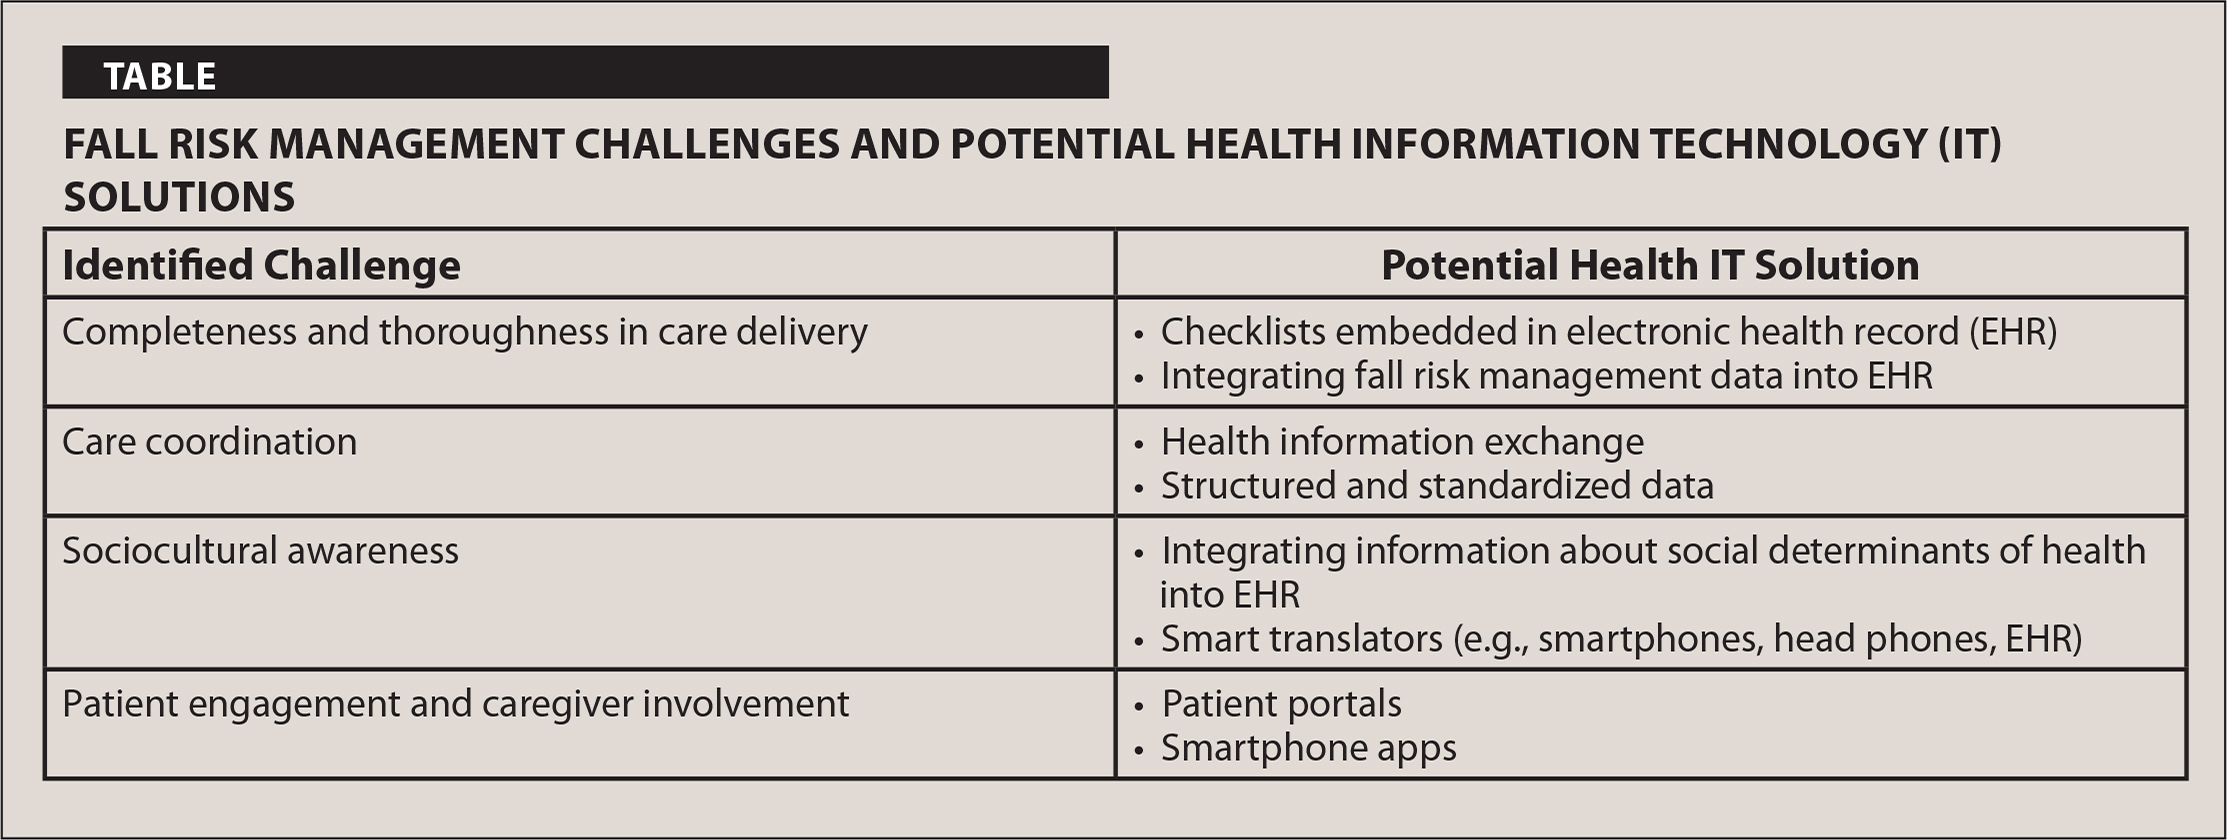 Fall Risk Management Challenges and Potential Health Information Technology (IT) Solutions